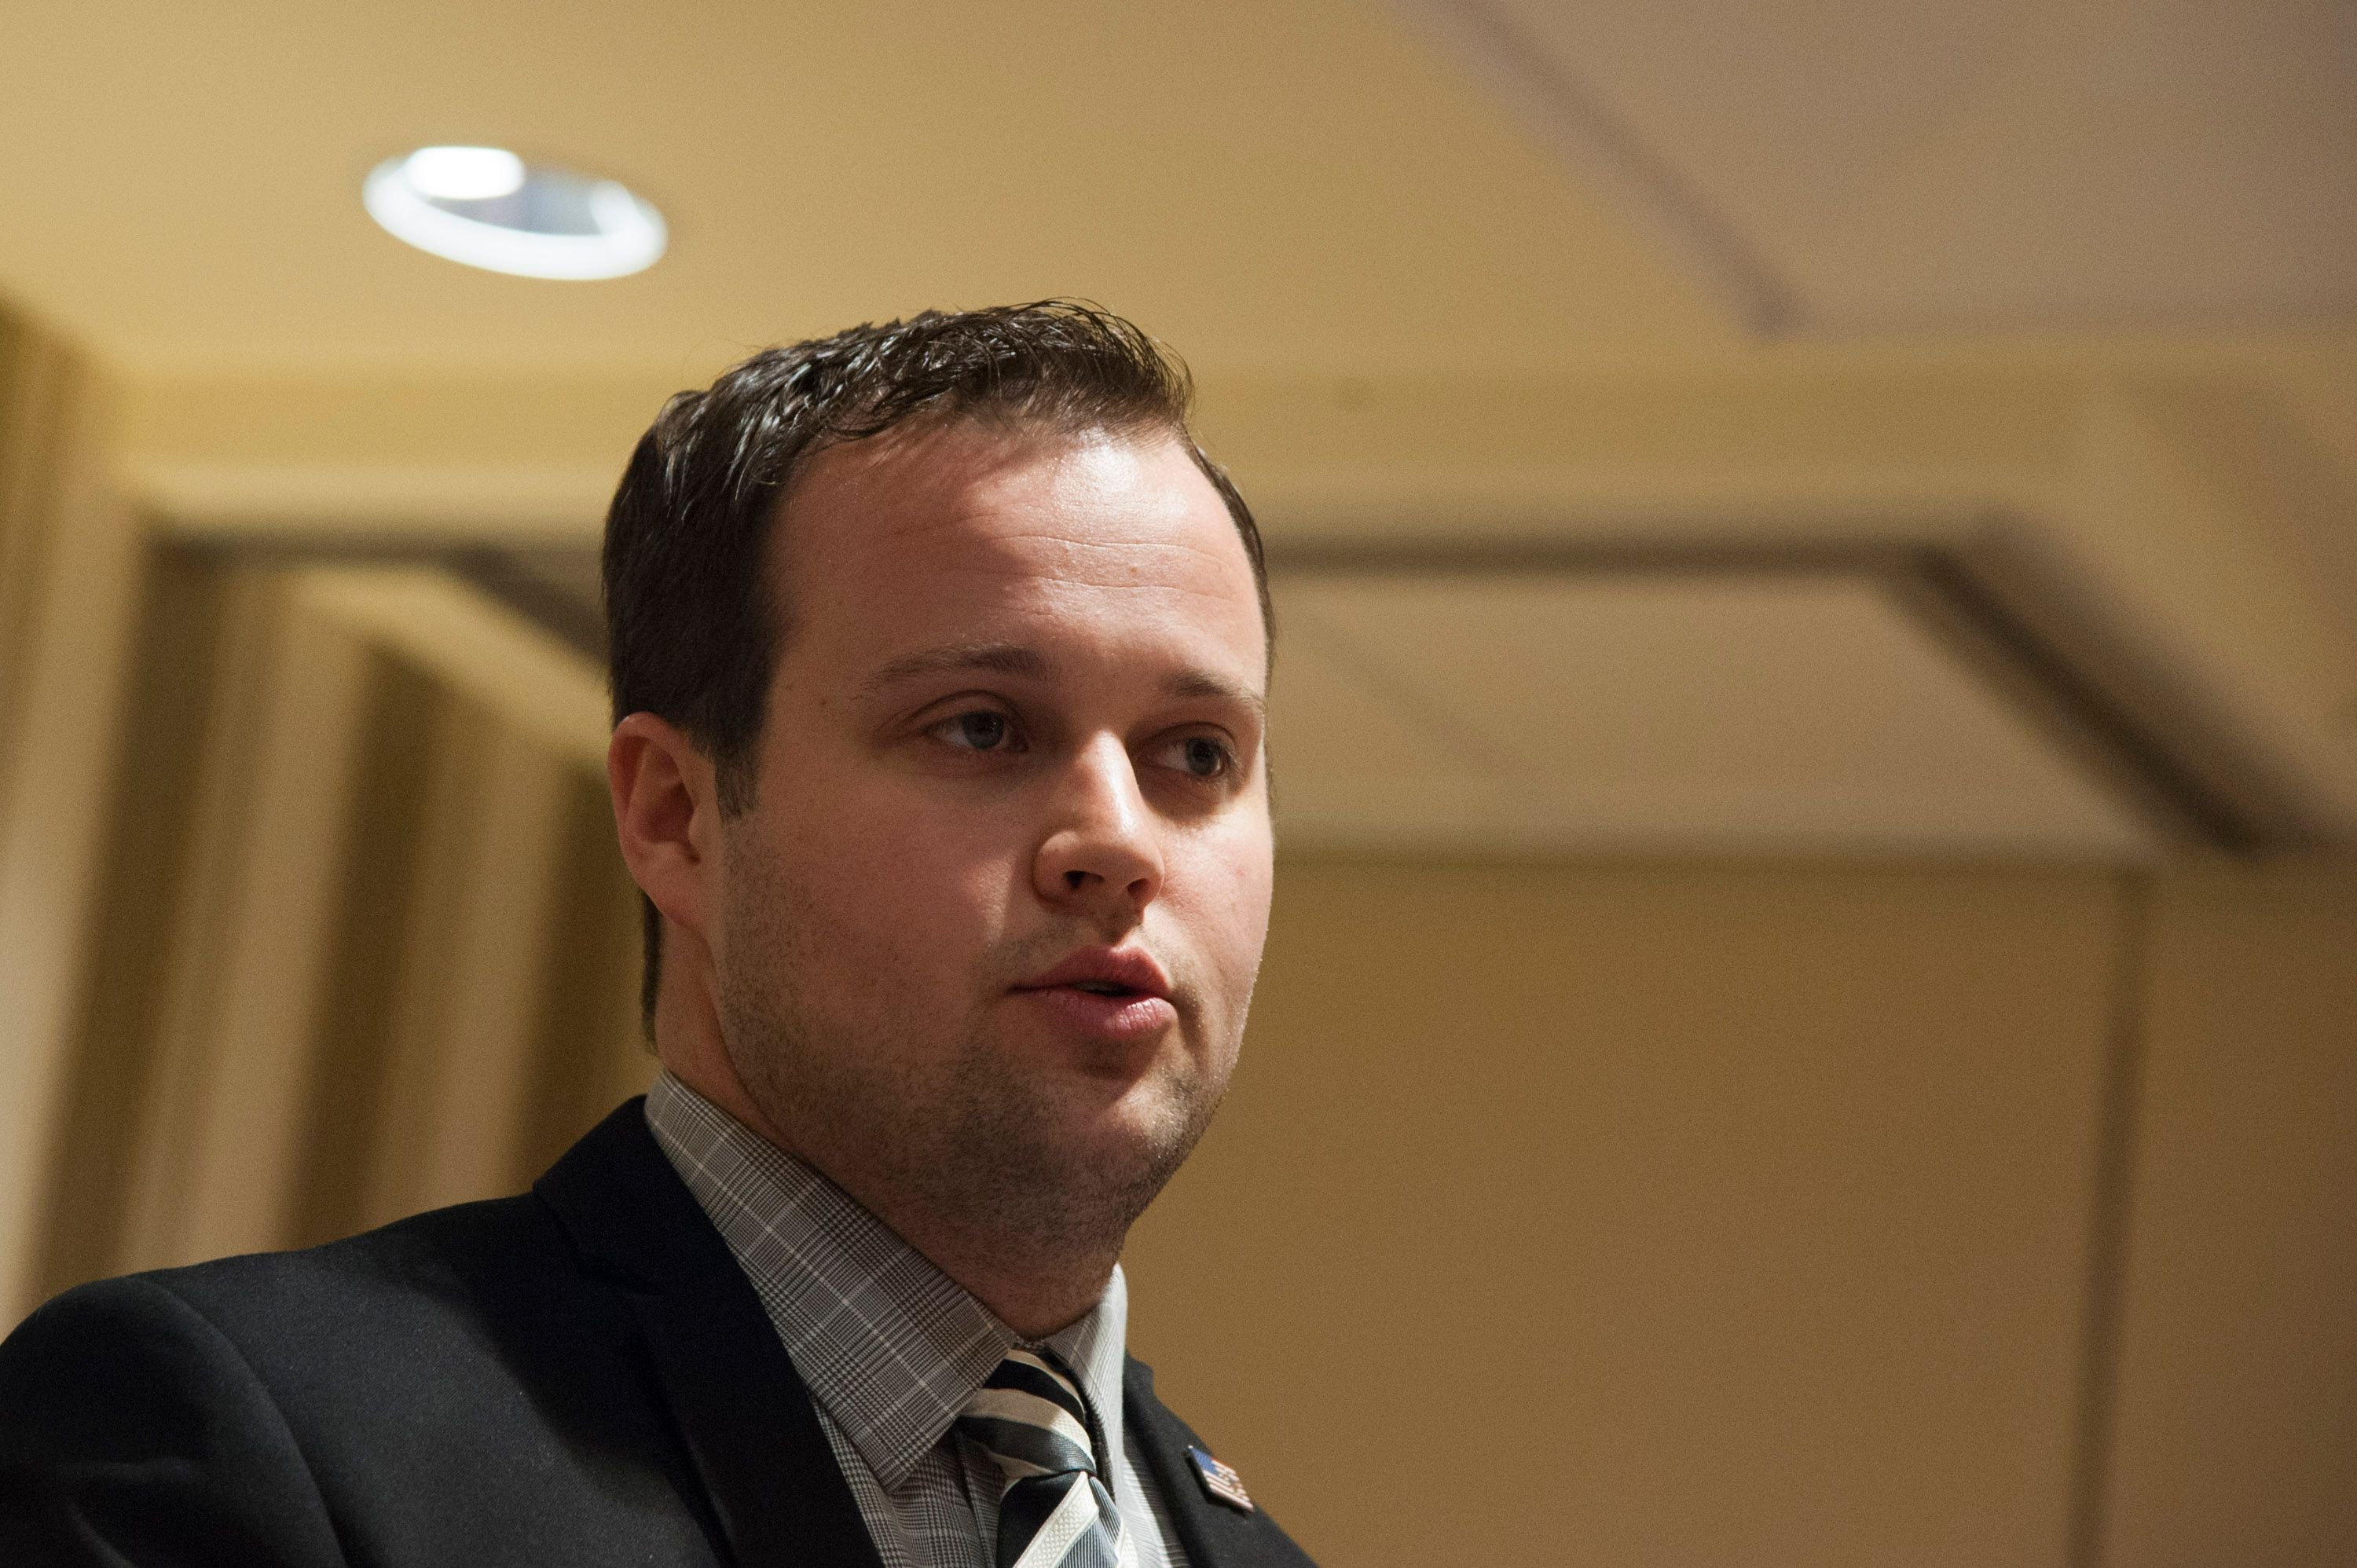 Josh Duggar at the 42nd annual Conservative Political Action Conference (CPAC) at the Gaylord National Resort Hotel and Convention Center on February 28, 2015   Photo: Getty Images